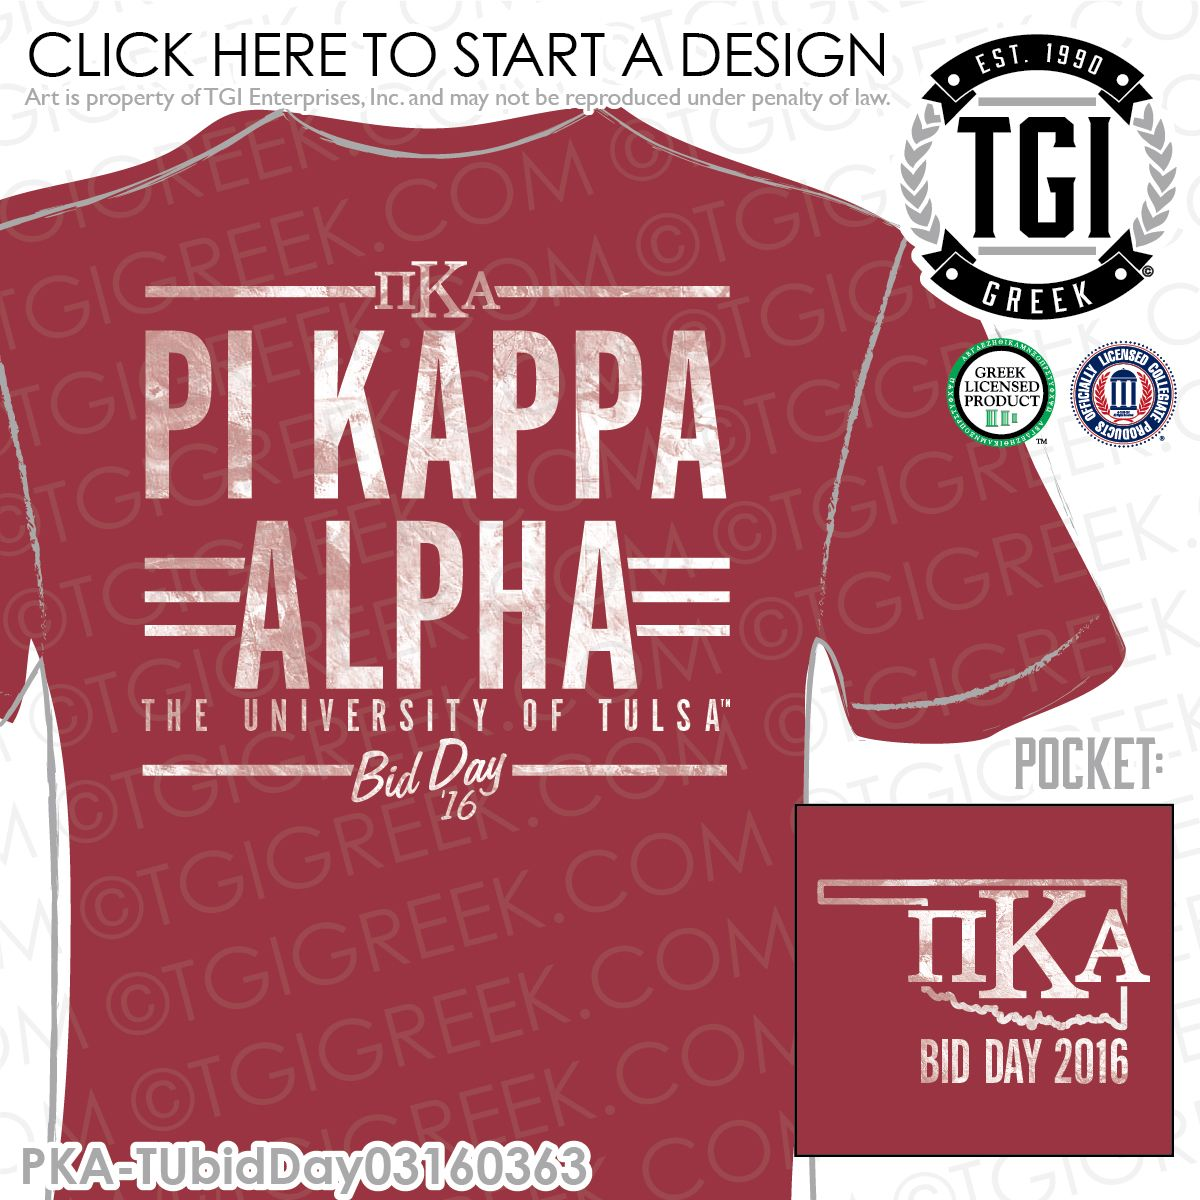 tgi greek - pi kappa alpha - rush - recruitment - greek apparel